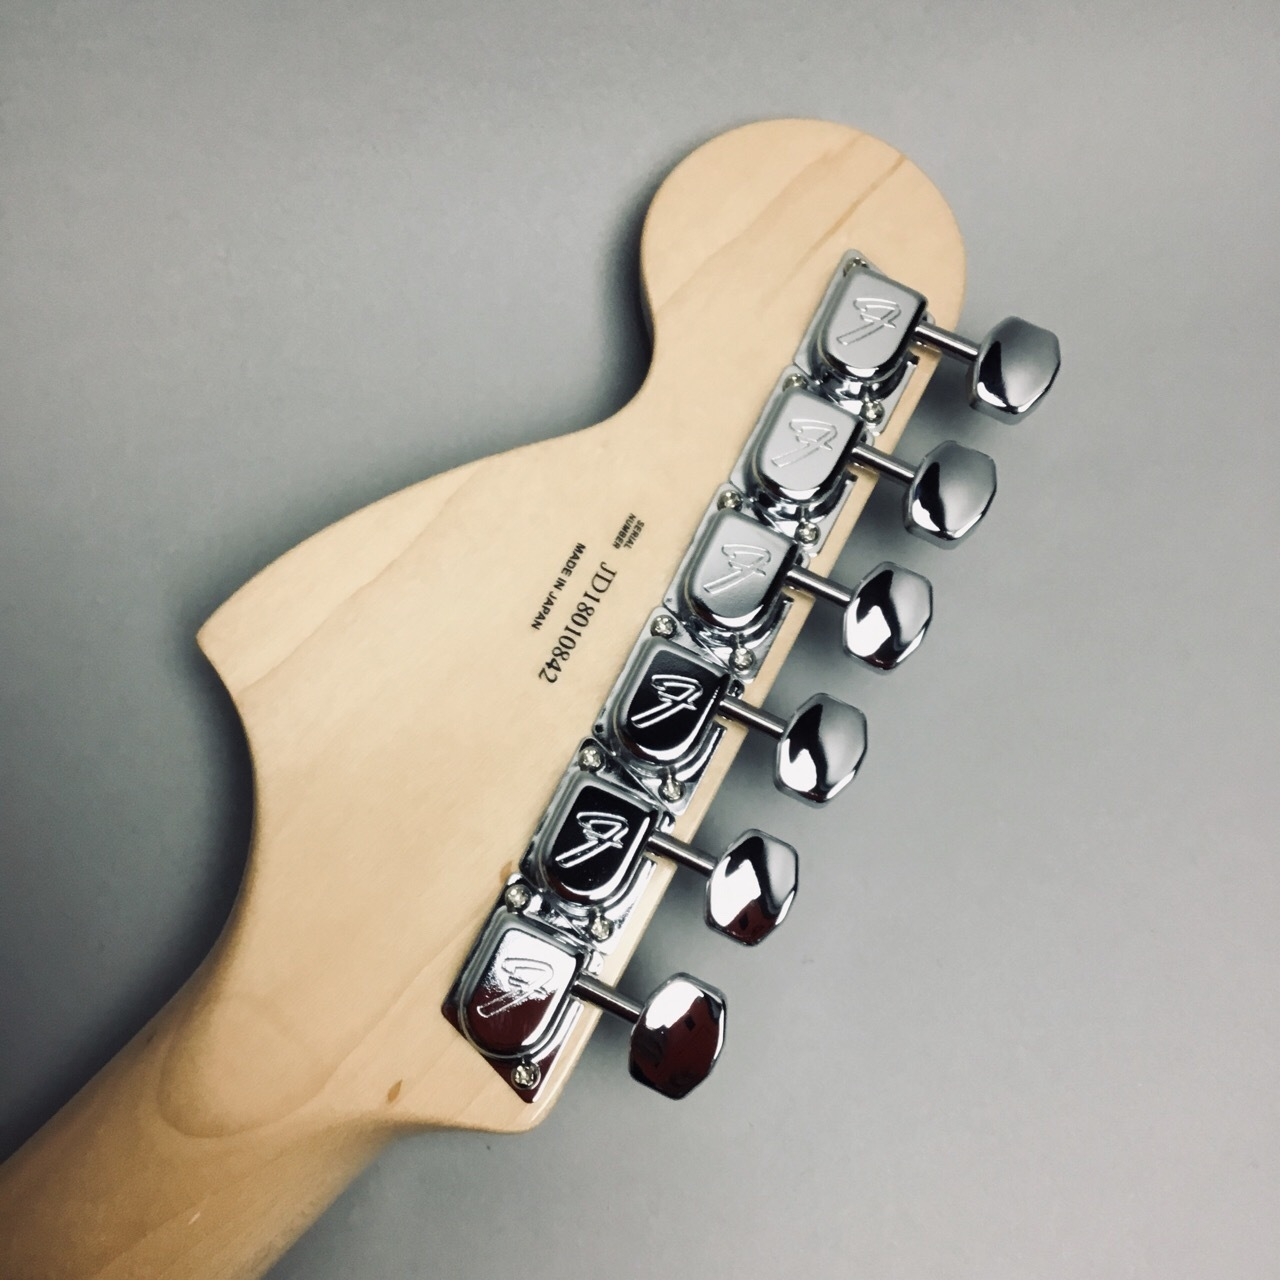 MADE IN JAPAN TRADITIONAL 70S STRATOCASTERのヘッド裏-アップ画像